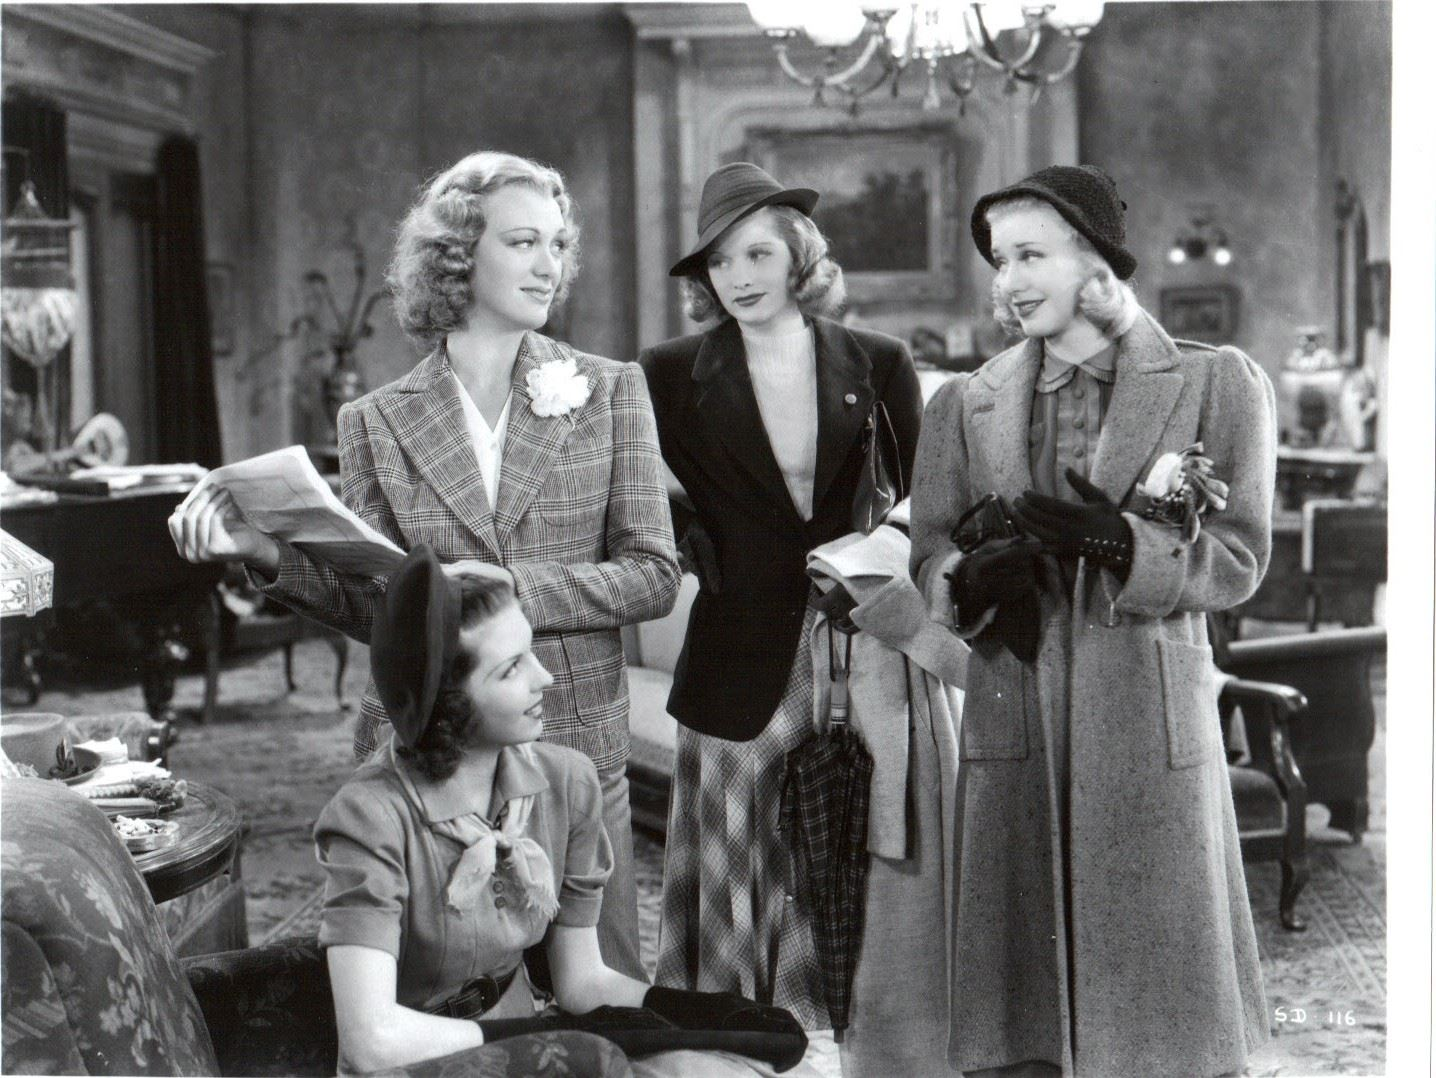 Ann Miller, birthday girl Eve Arden, Lucille Ball, and Ginger Rogers in Stage Door